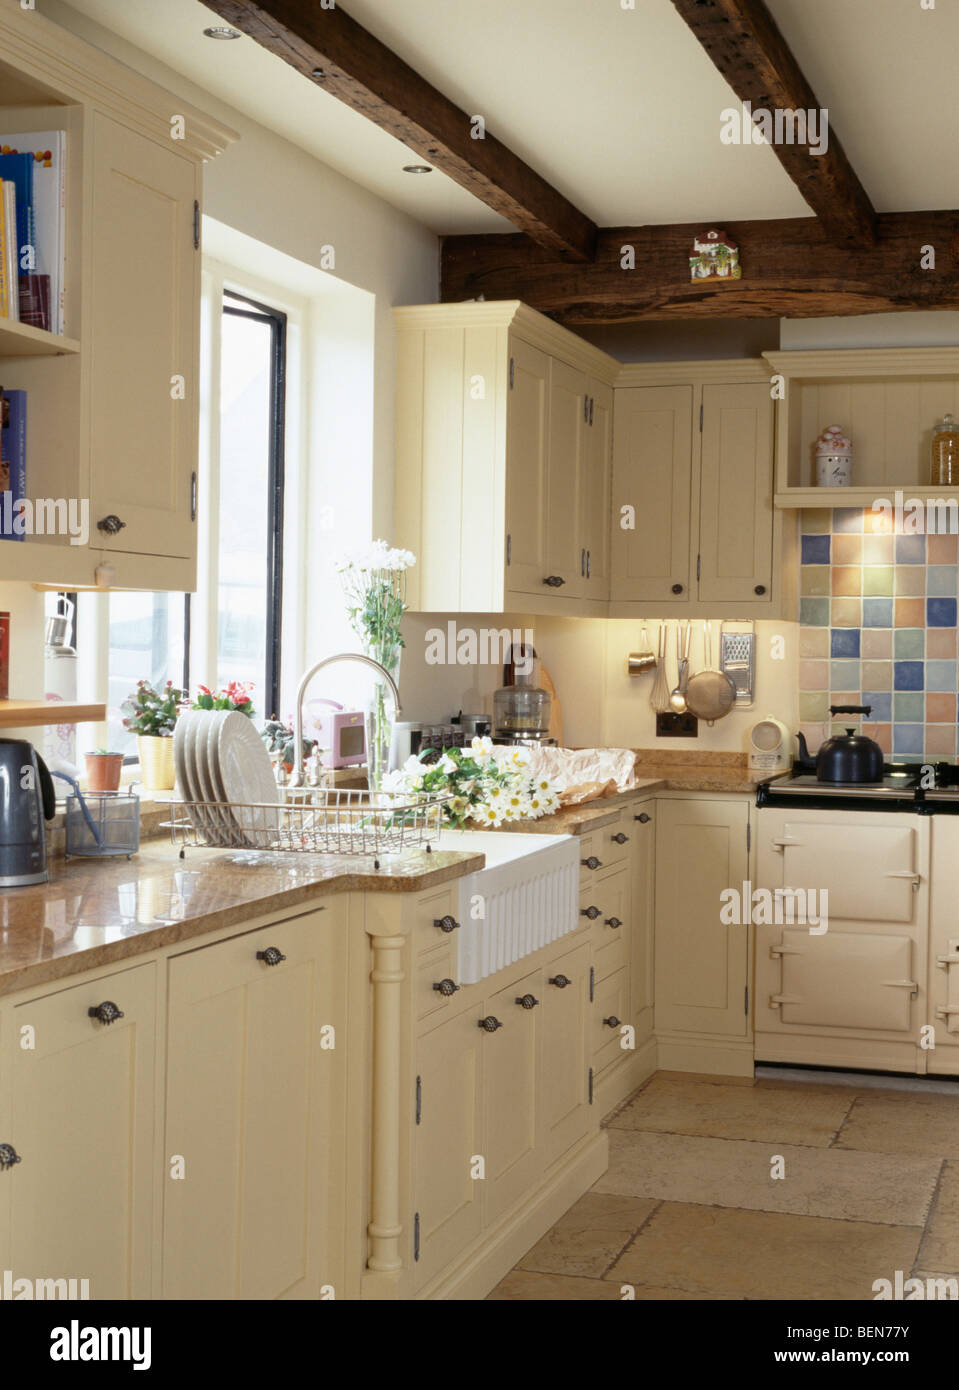 Belfast sink below window in country cottage kitchen with cream fitted units